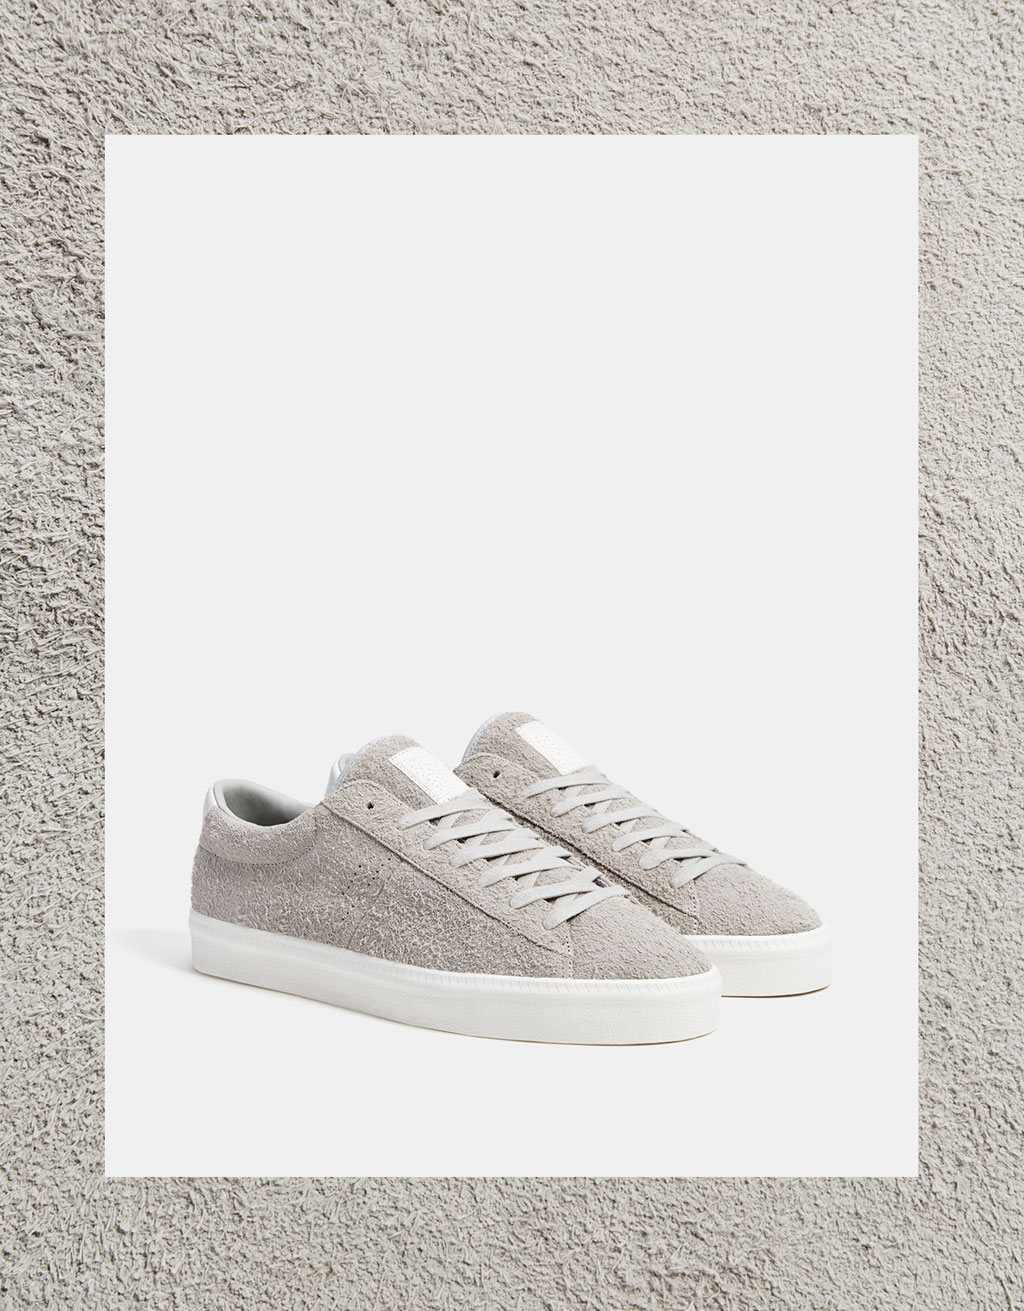 Men's basic leather sneakers with a furry finish